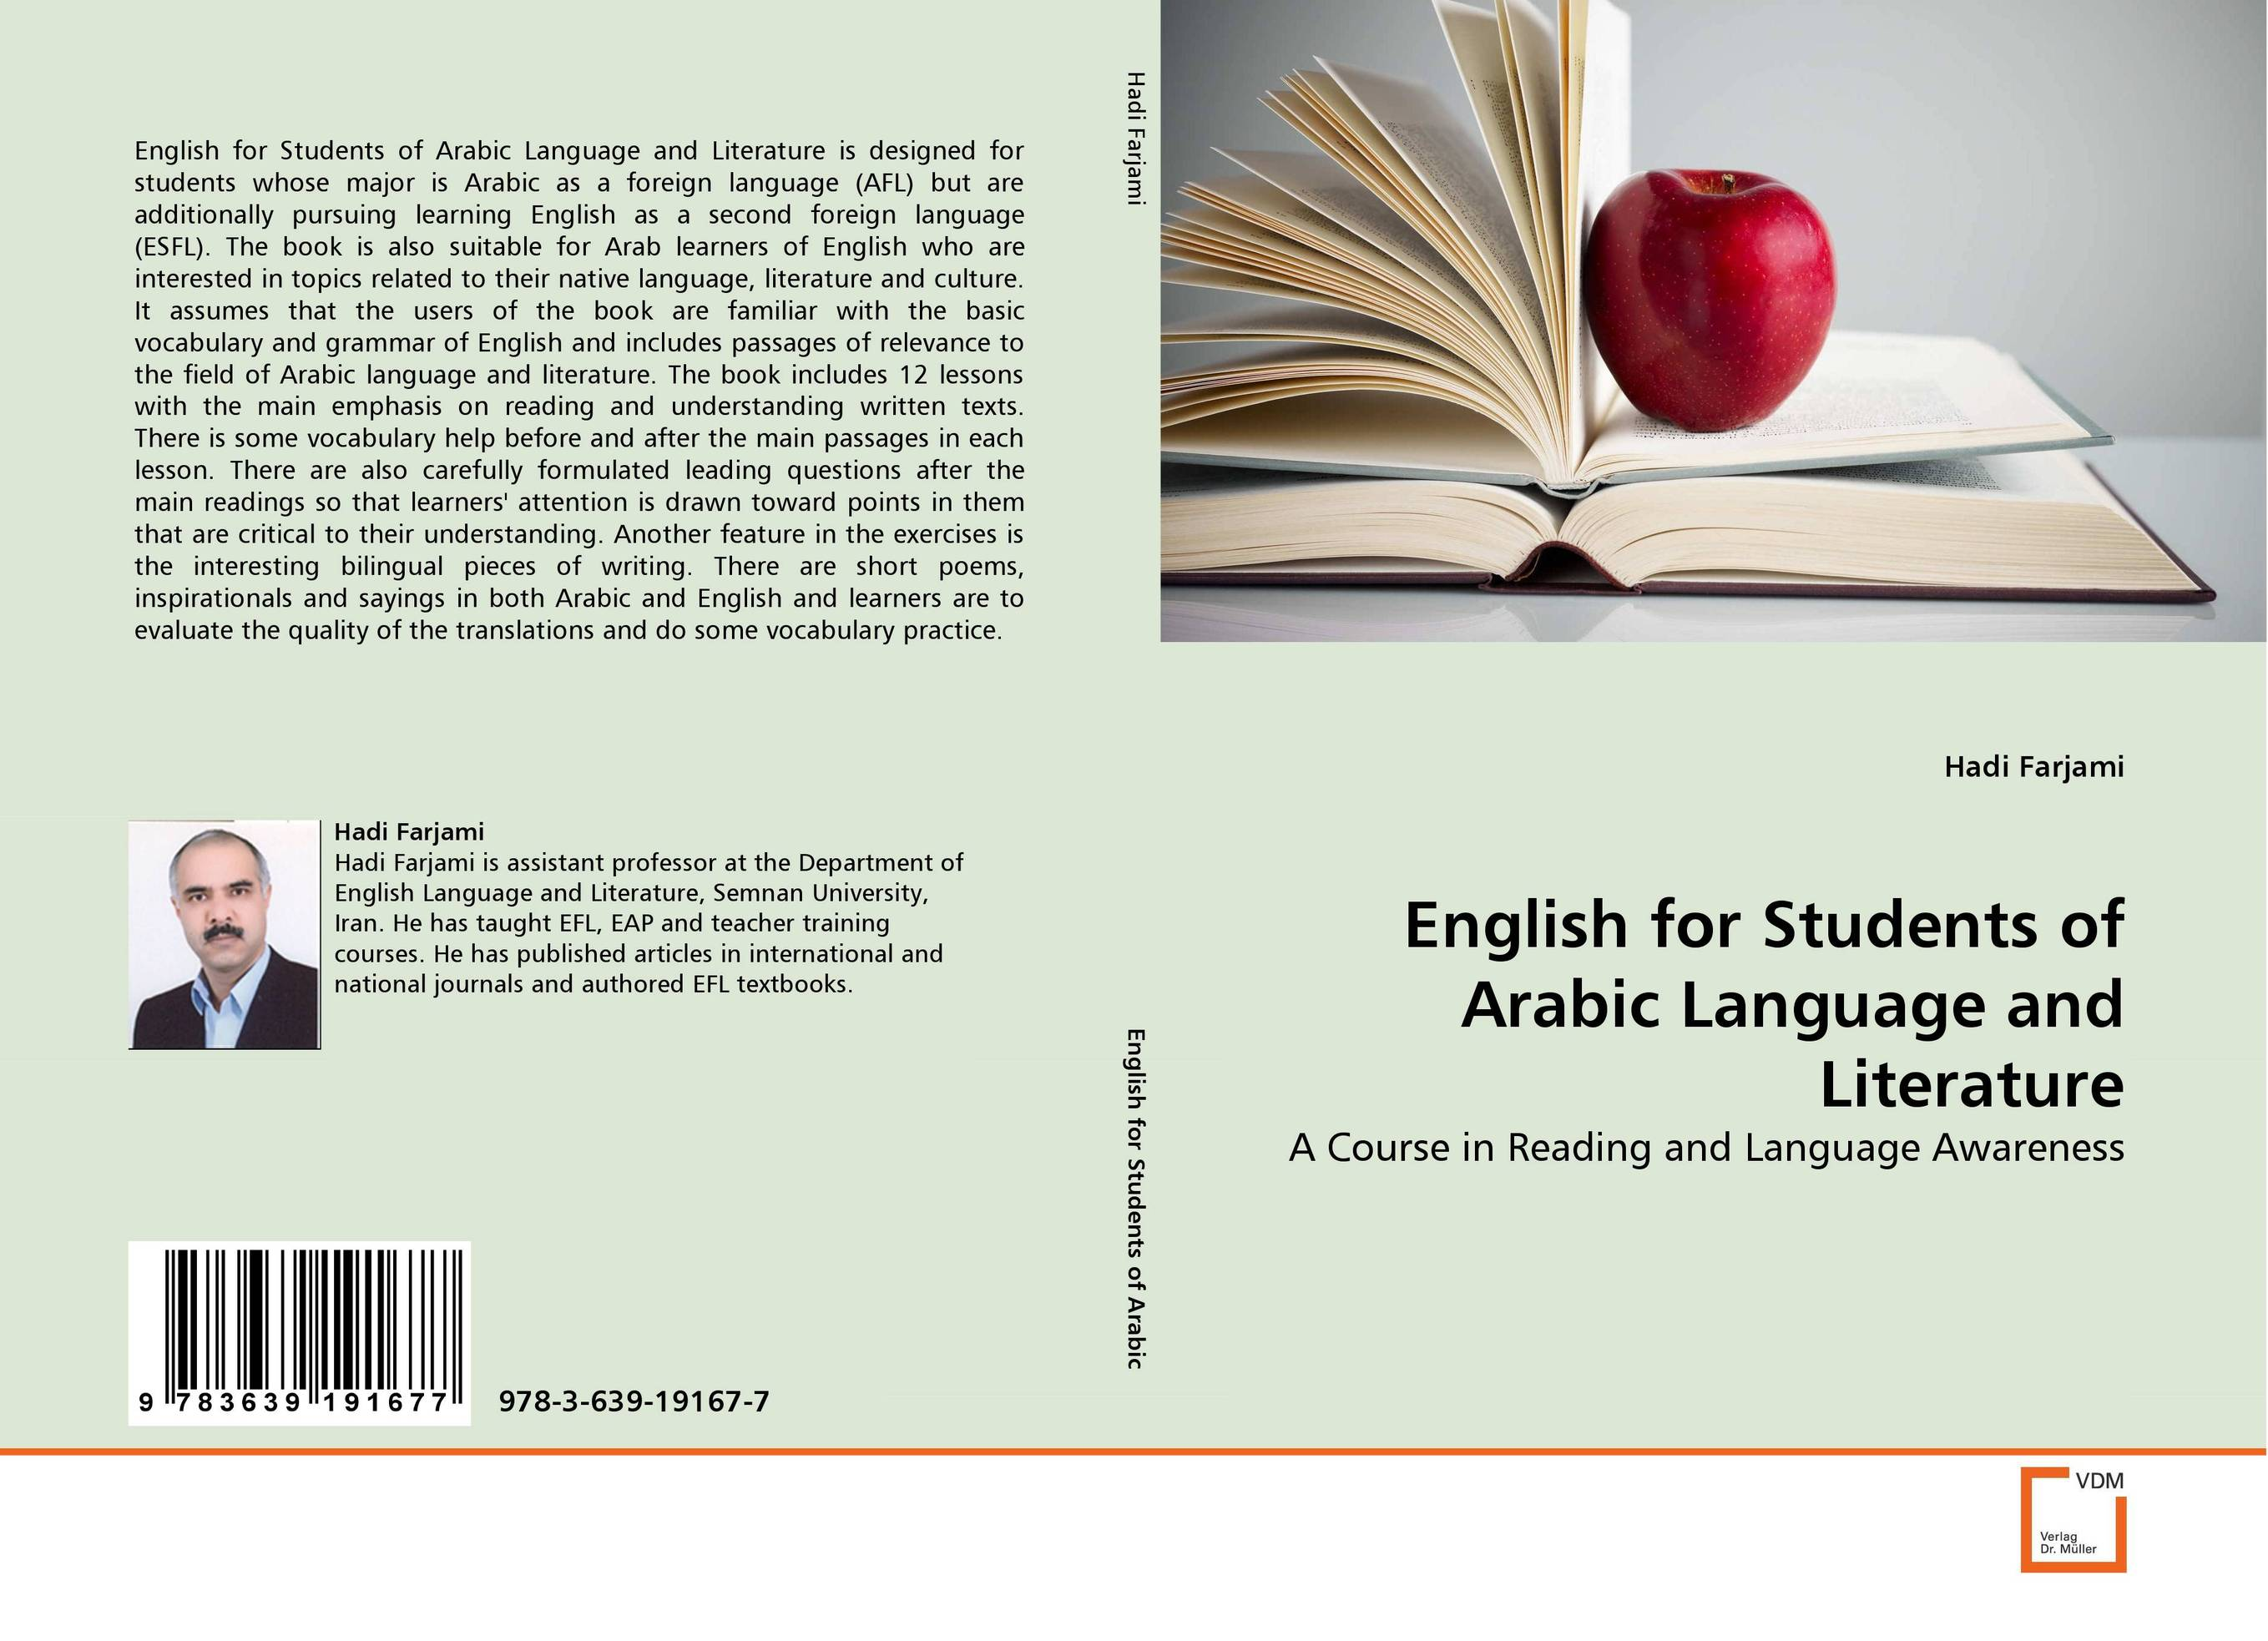 English for Students of Arabic Language and Literature ldnio 3u 1 6 м sc3301 сетевой удлинитель black